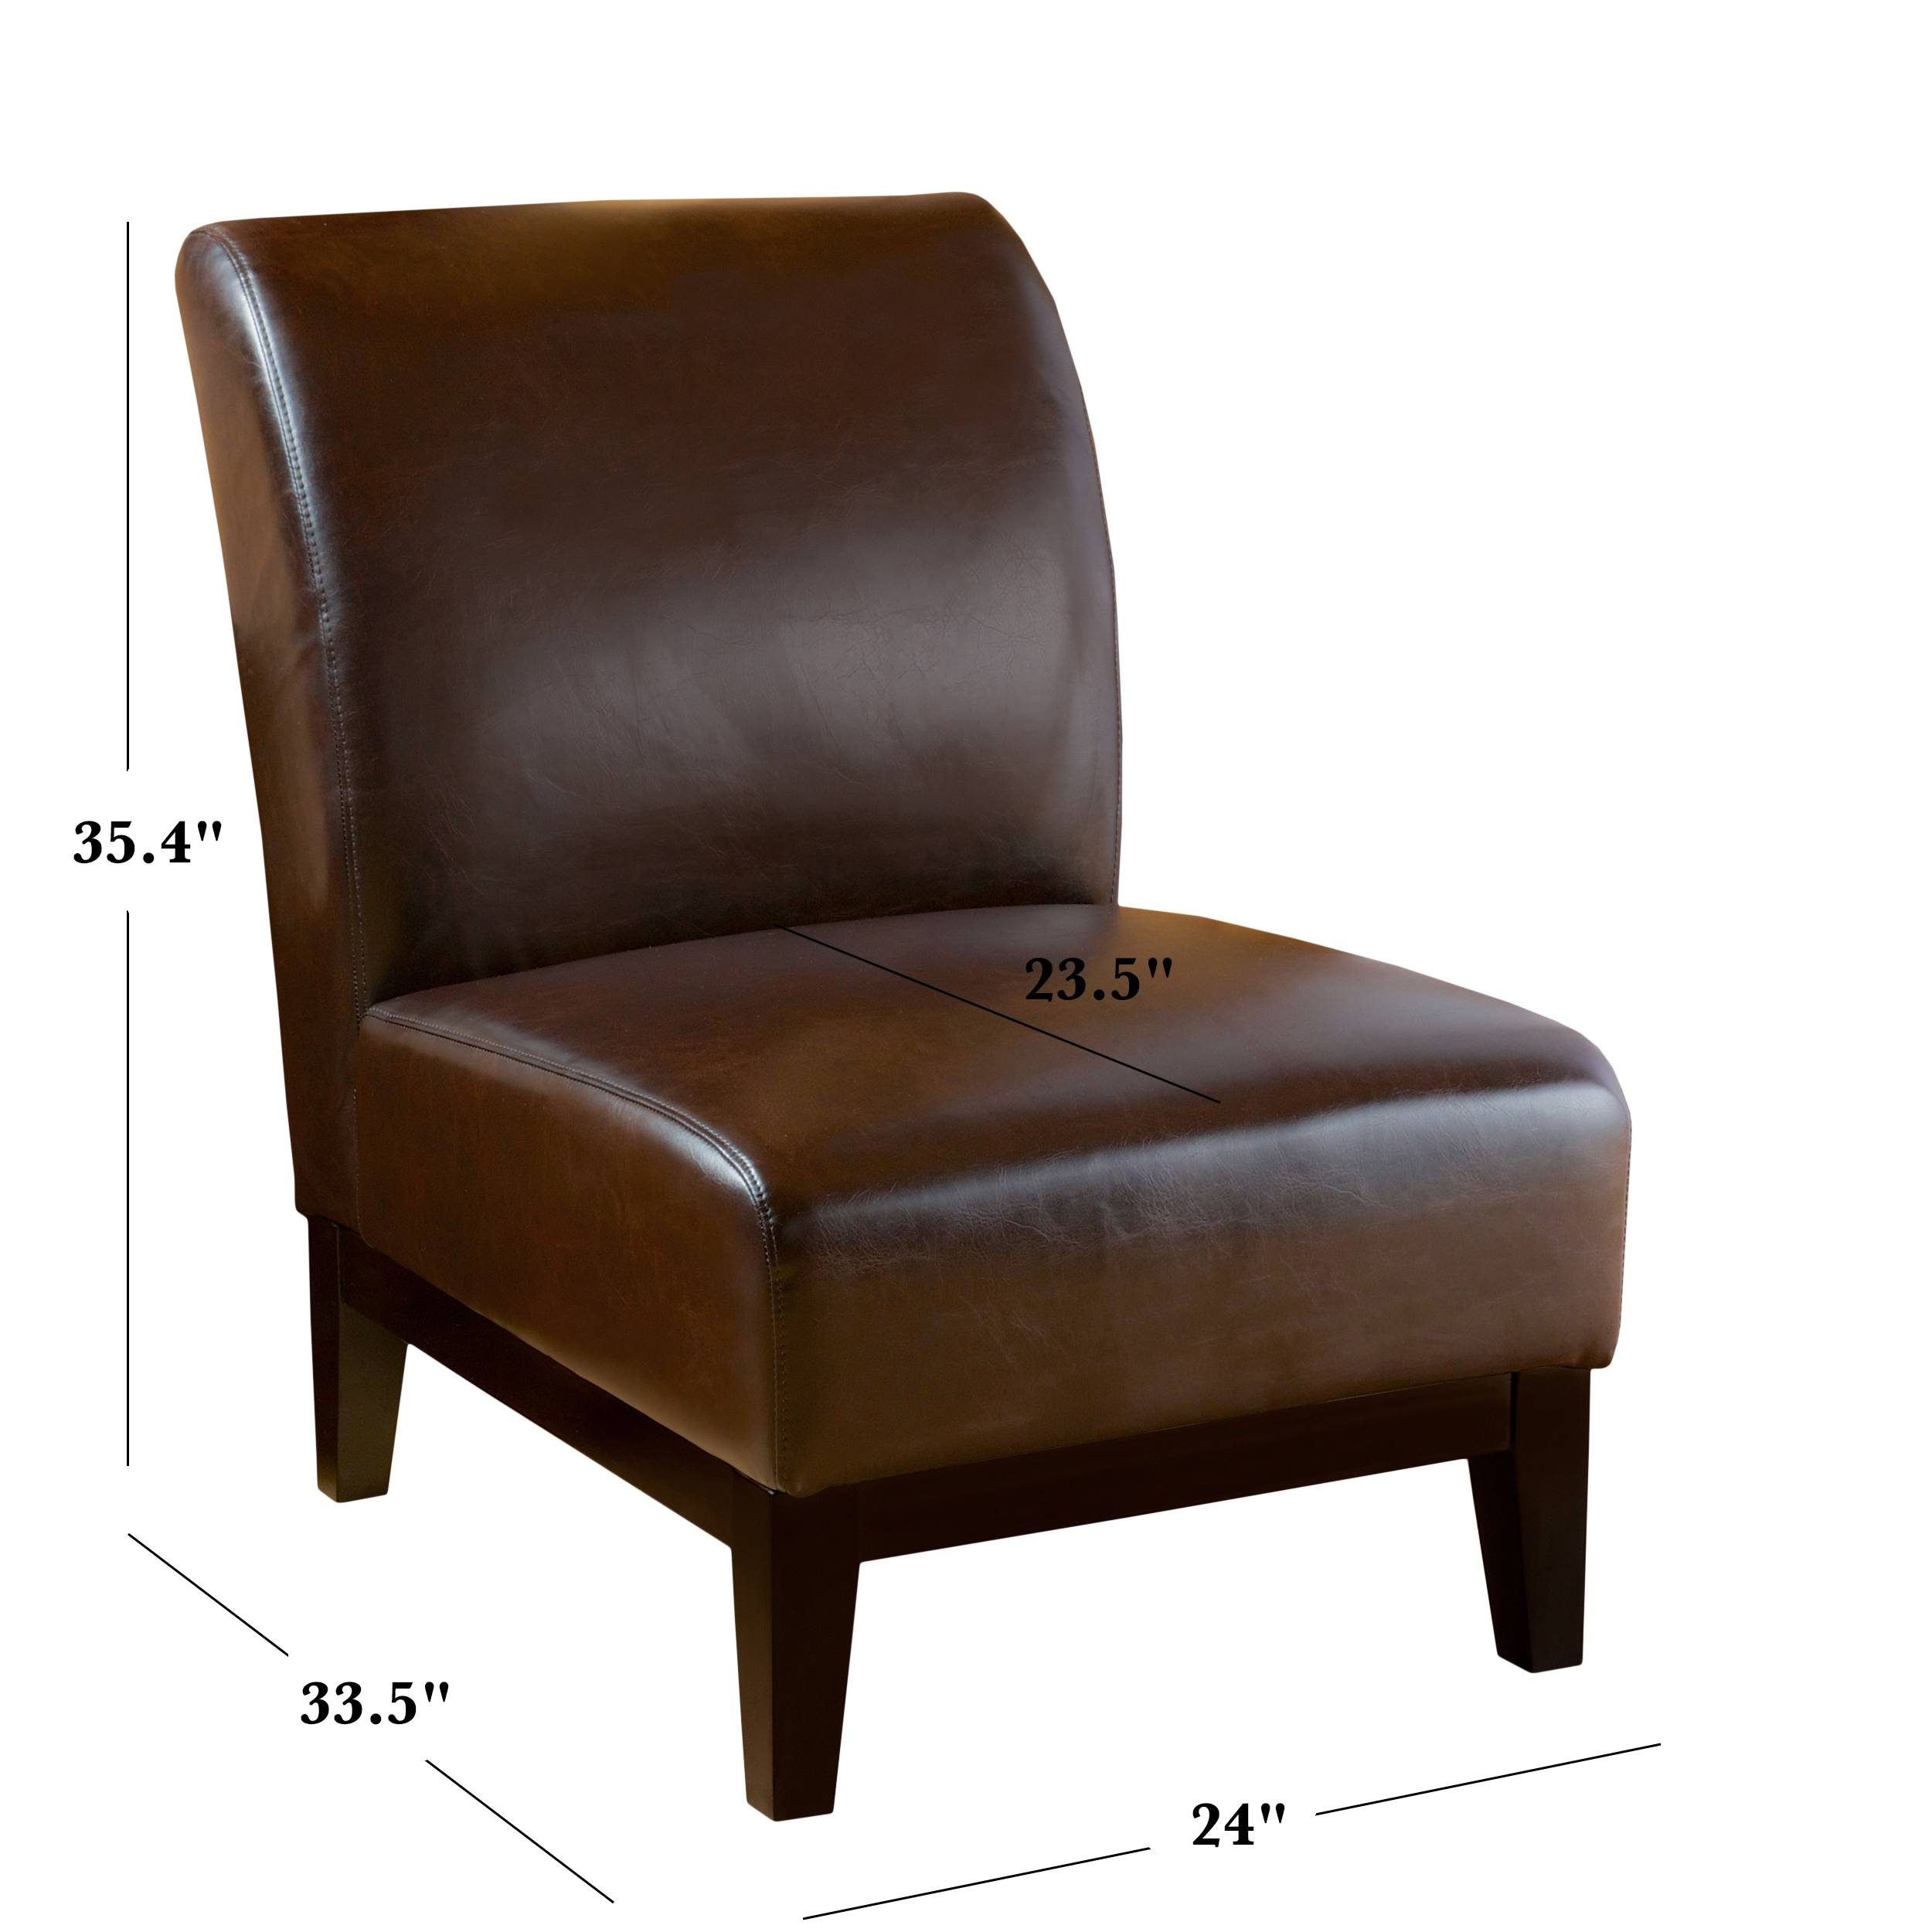 Leather Chairs with regard to Heel Chair Sofas (Image 22 of 30)